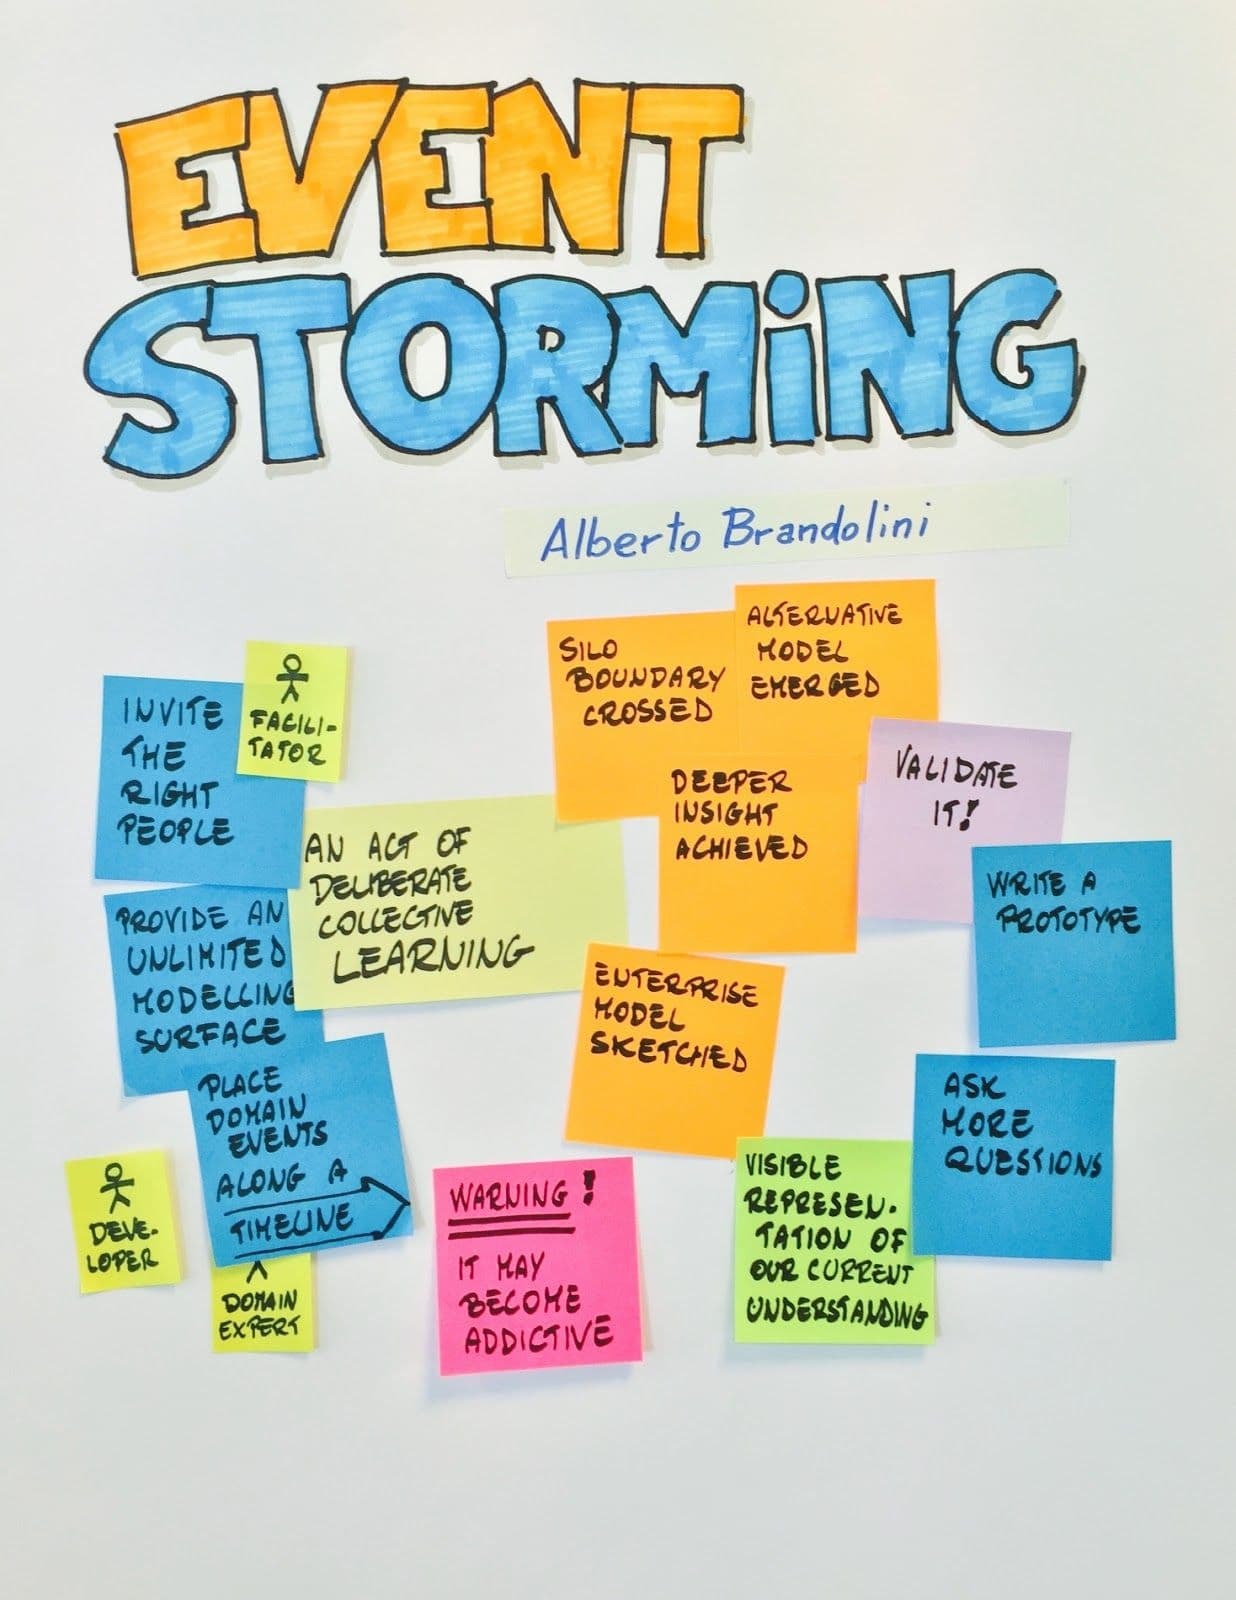 EventStorming - An act of deliberate collective learning. Alberto Brandolini.